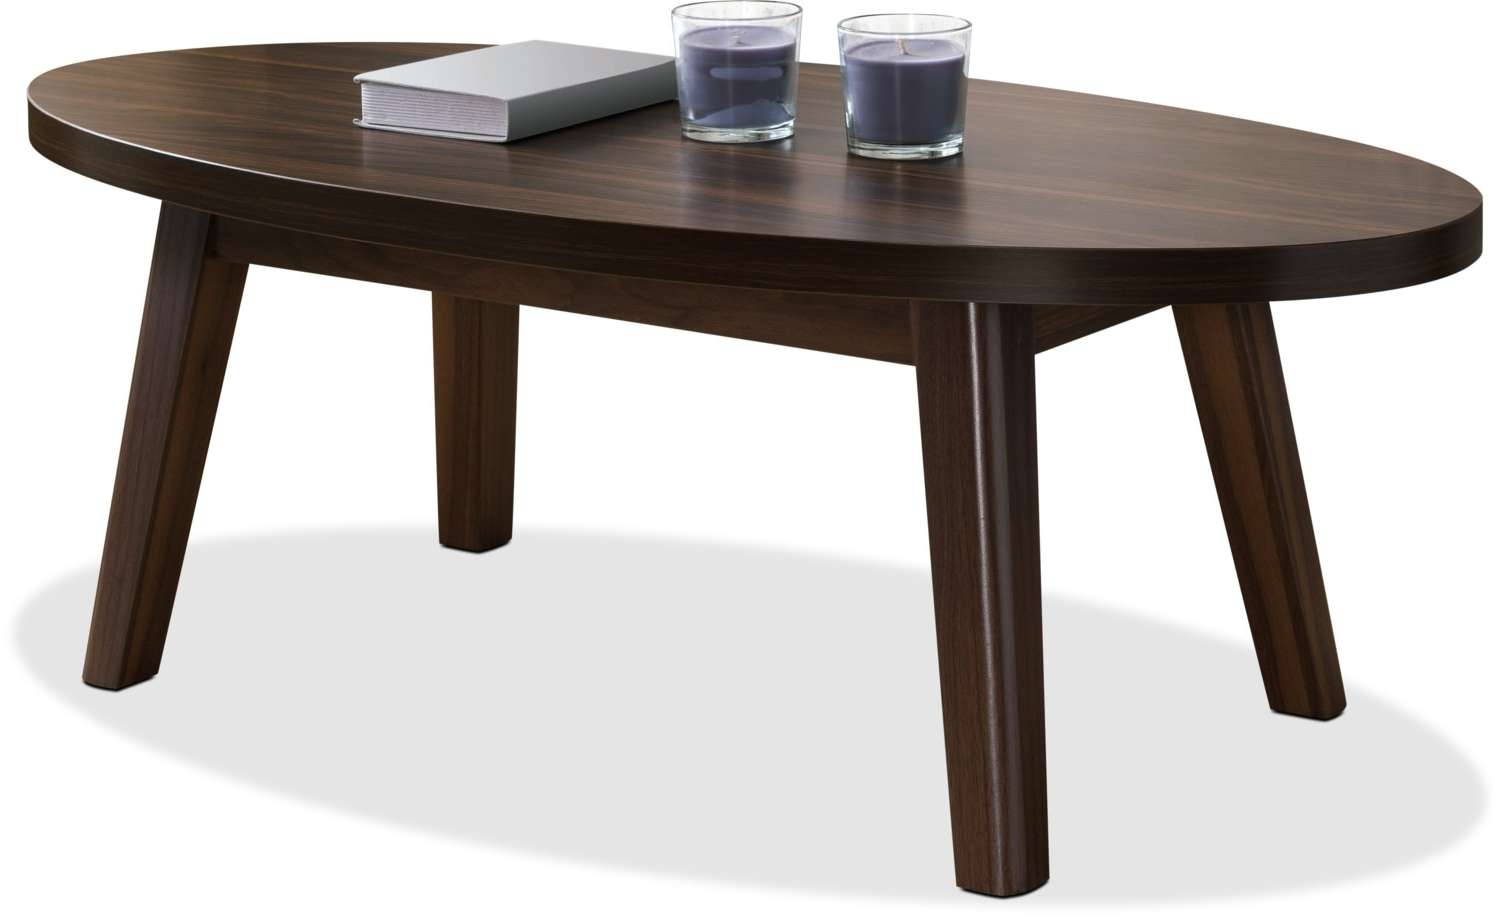 Coffee Table That Opens – Coffee Drinker Intended For Most Recent Opens Up Coffee Tables (View 5 of 20)